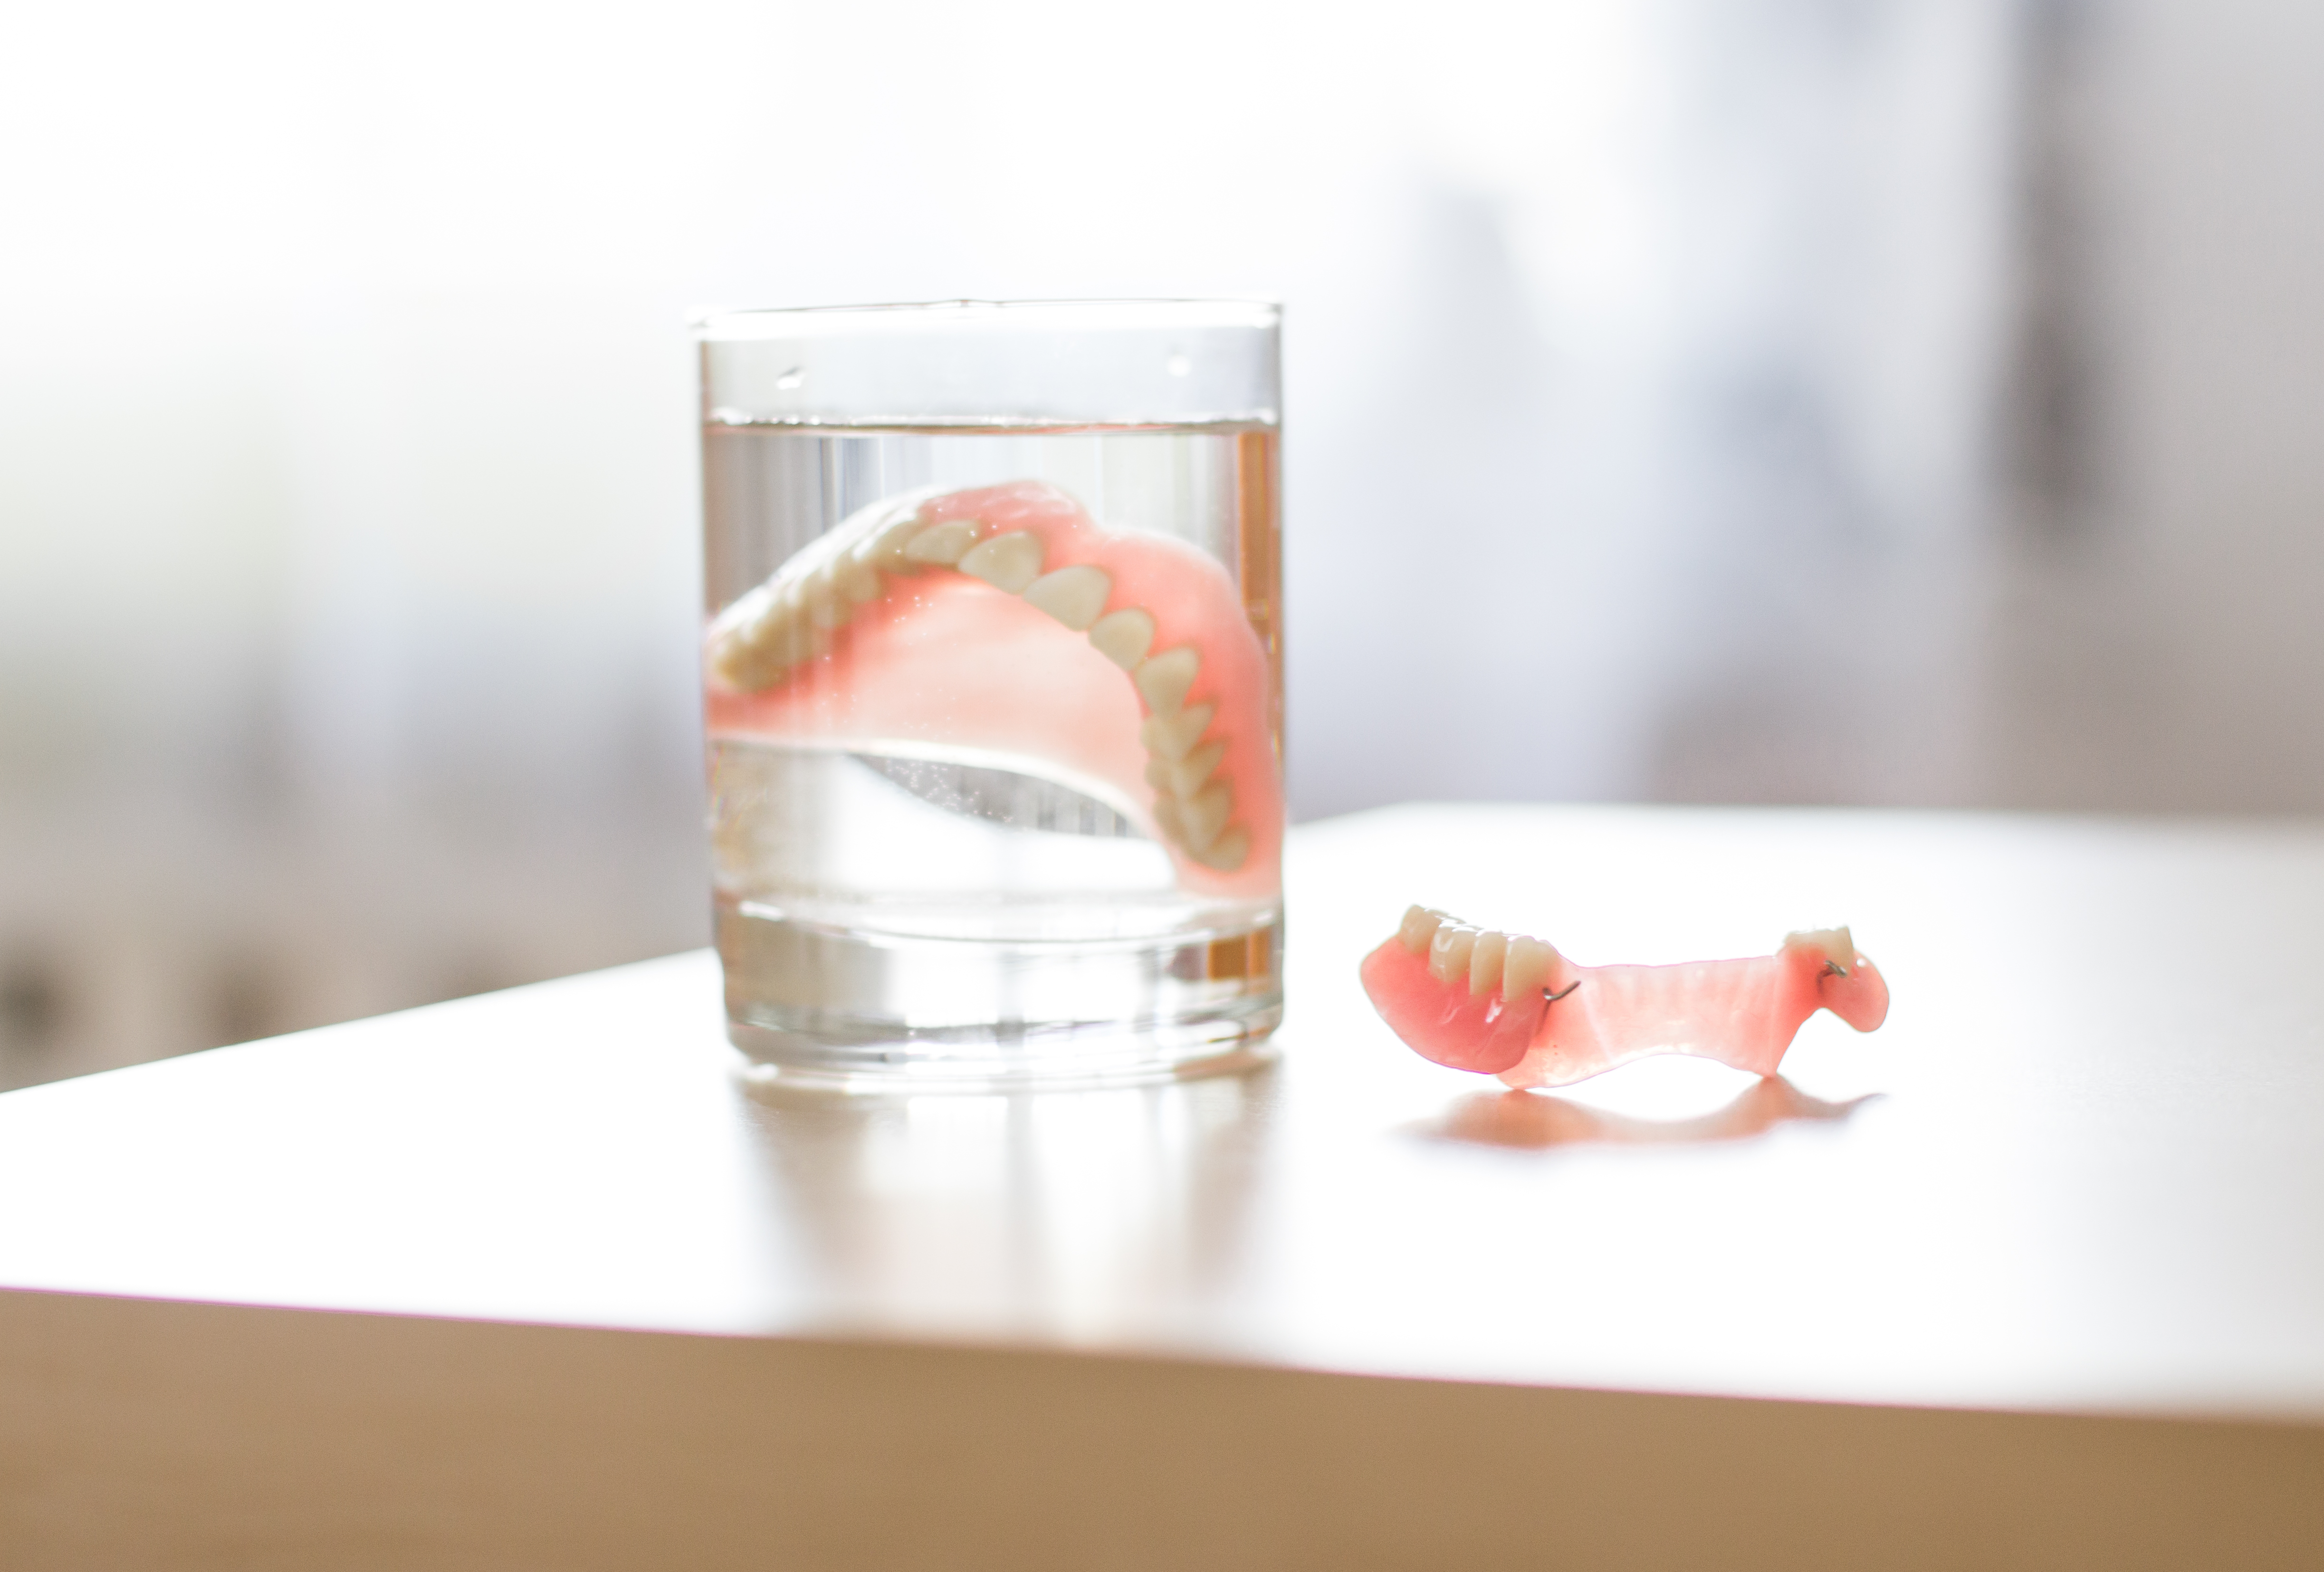 Traditionals dentures in Anchorage soaking in glass